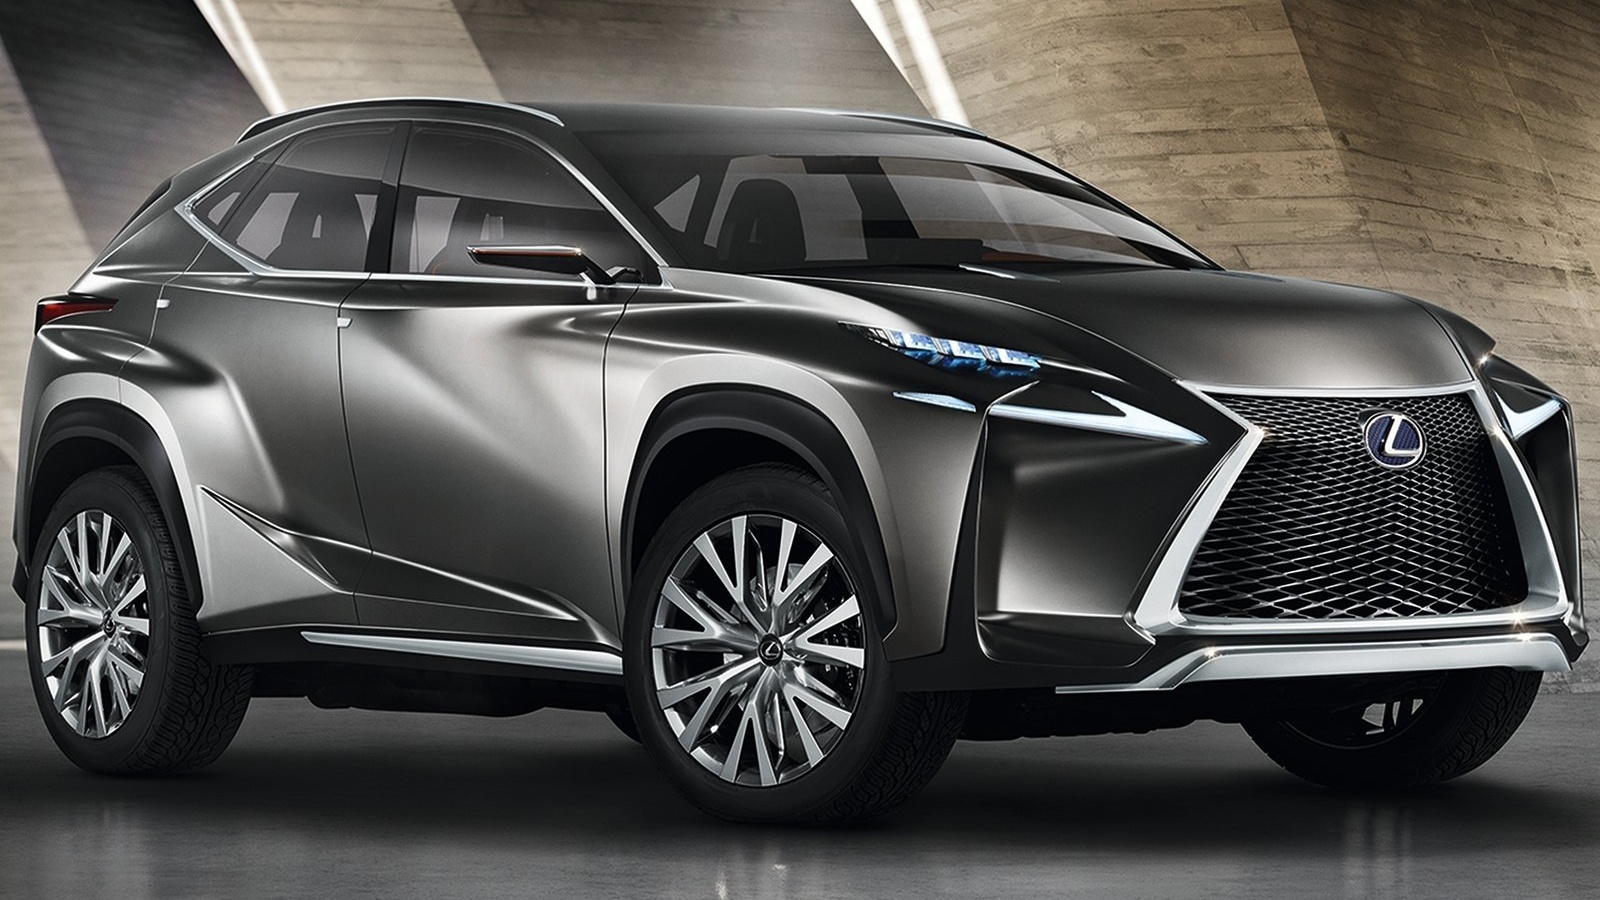 Lexus-LF-NX_Concept_2013_1600x1200_wallpaper_01_Snapseed